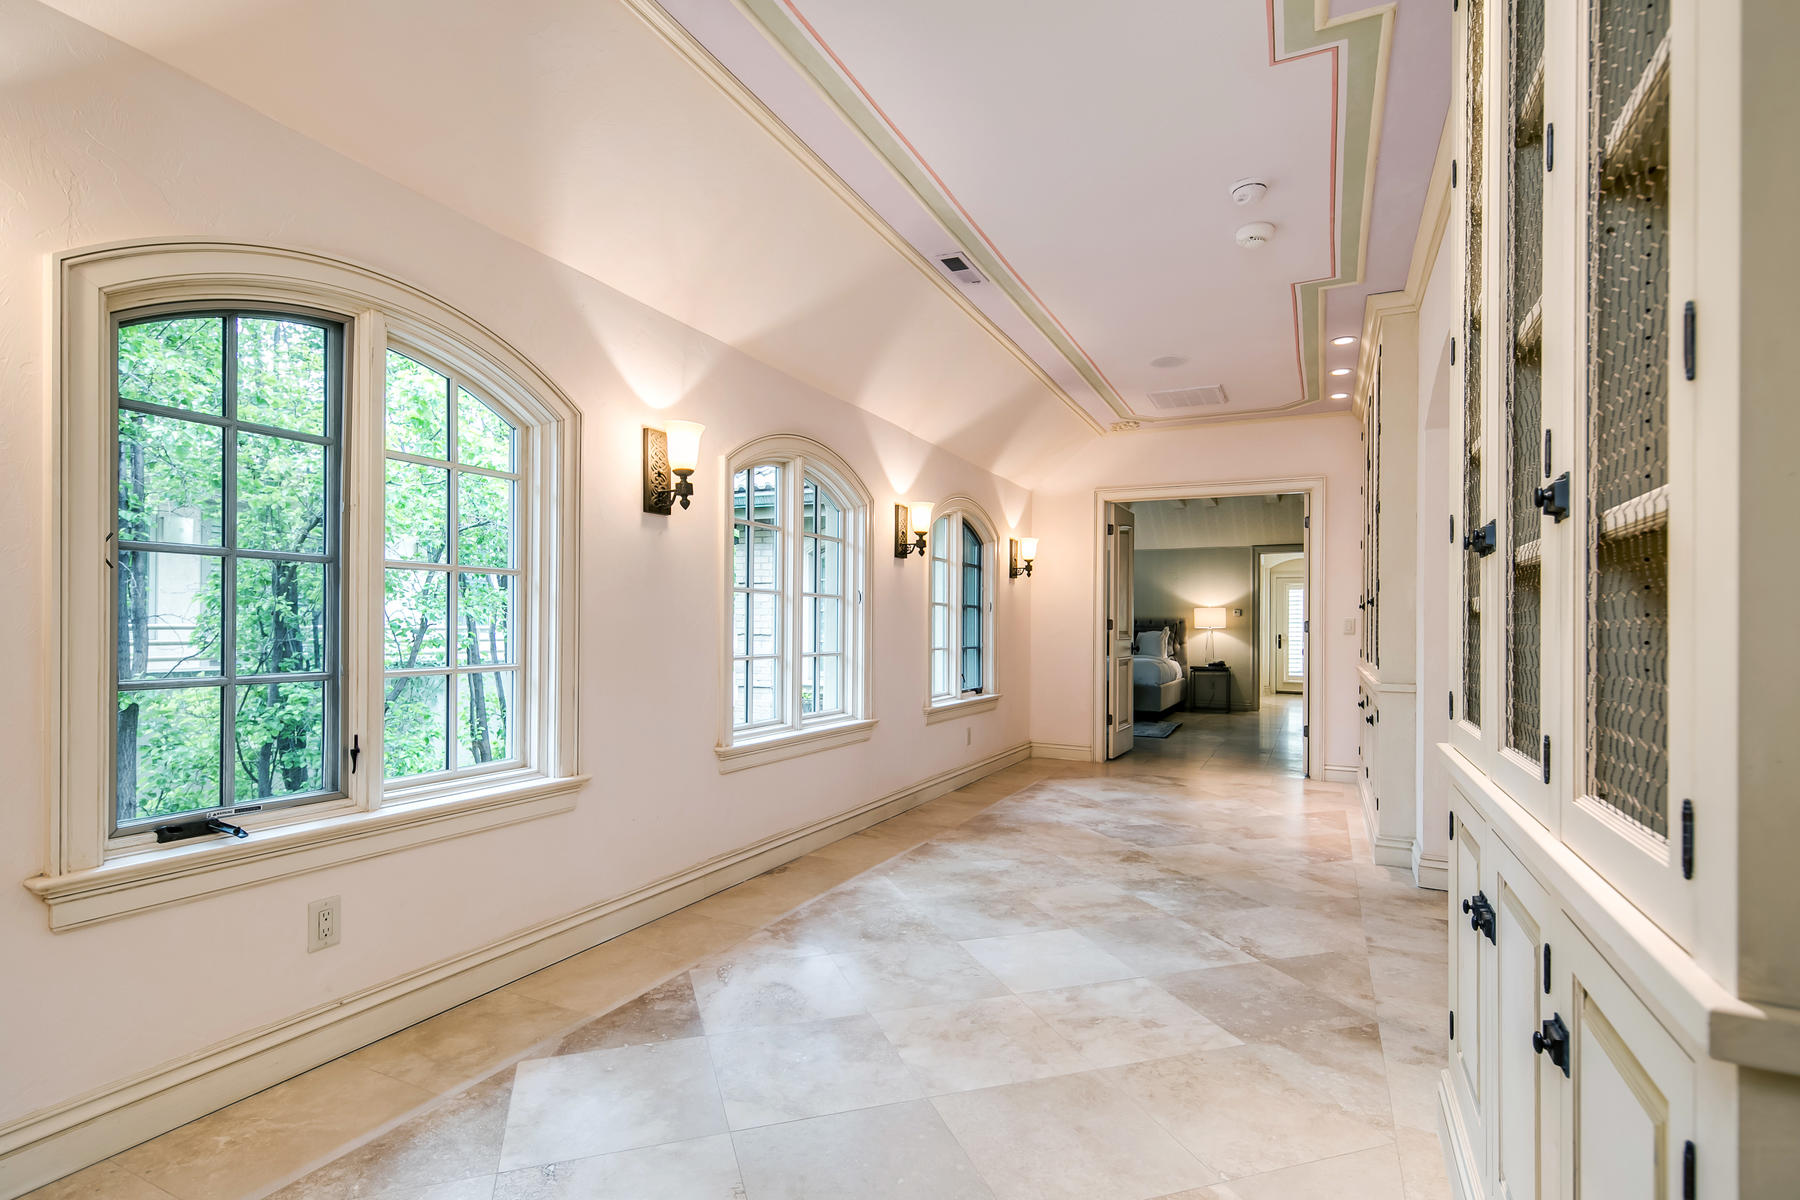 Additional photo for property listing at Incredible Mediterranean-Revival Style Home in Cherry Creek! 475 Madison Street Denver, Colorado 80206 United States